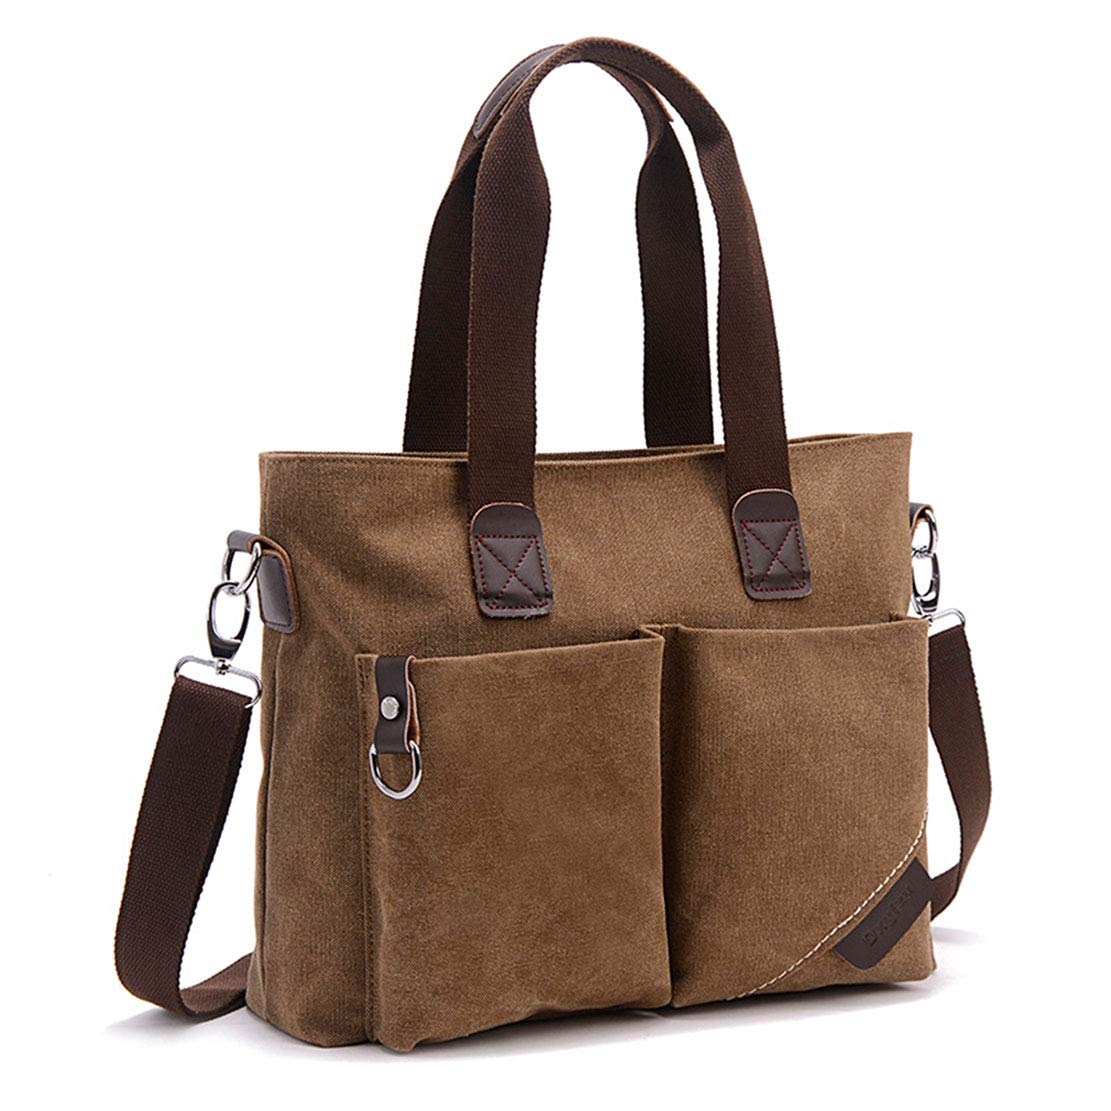 ToLFE Women Top Handle Satchel Handbags Tote Purse Shoulder Bag (Coffee)